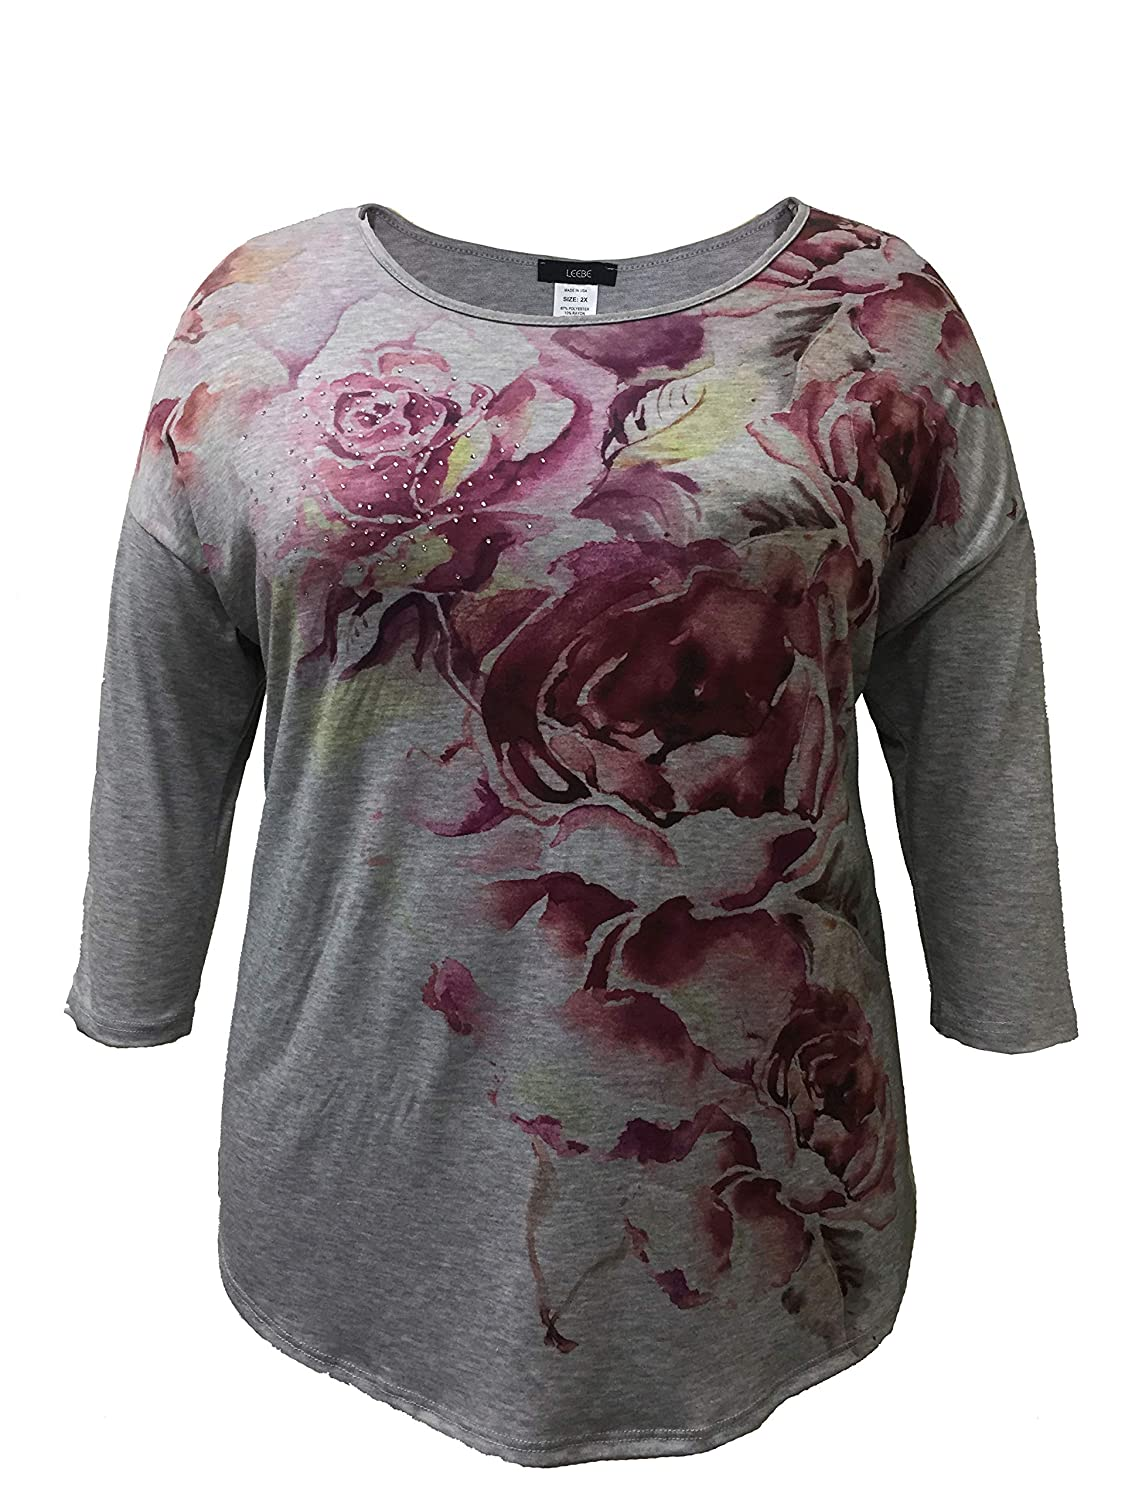 LEEBE Plus Size 3/4 Sleeve Floral Print with Stones